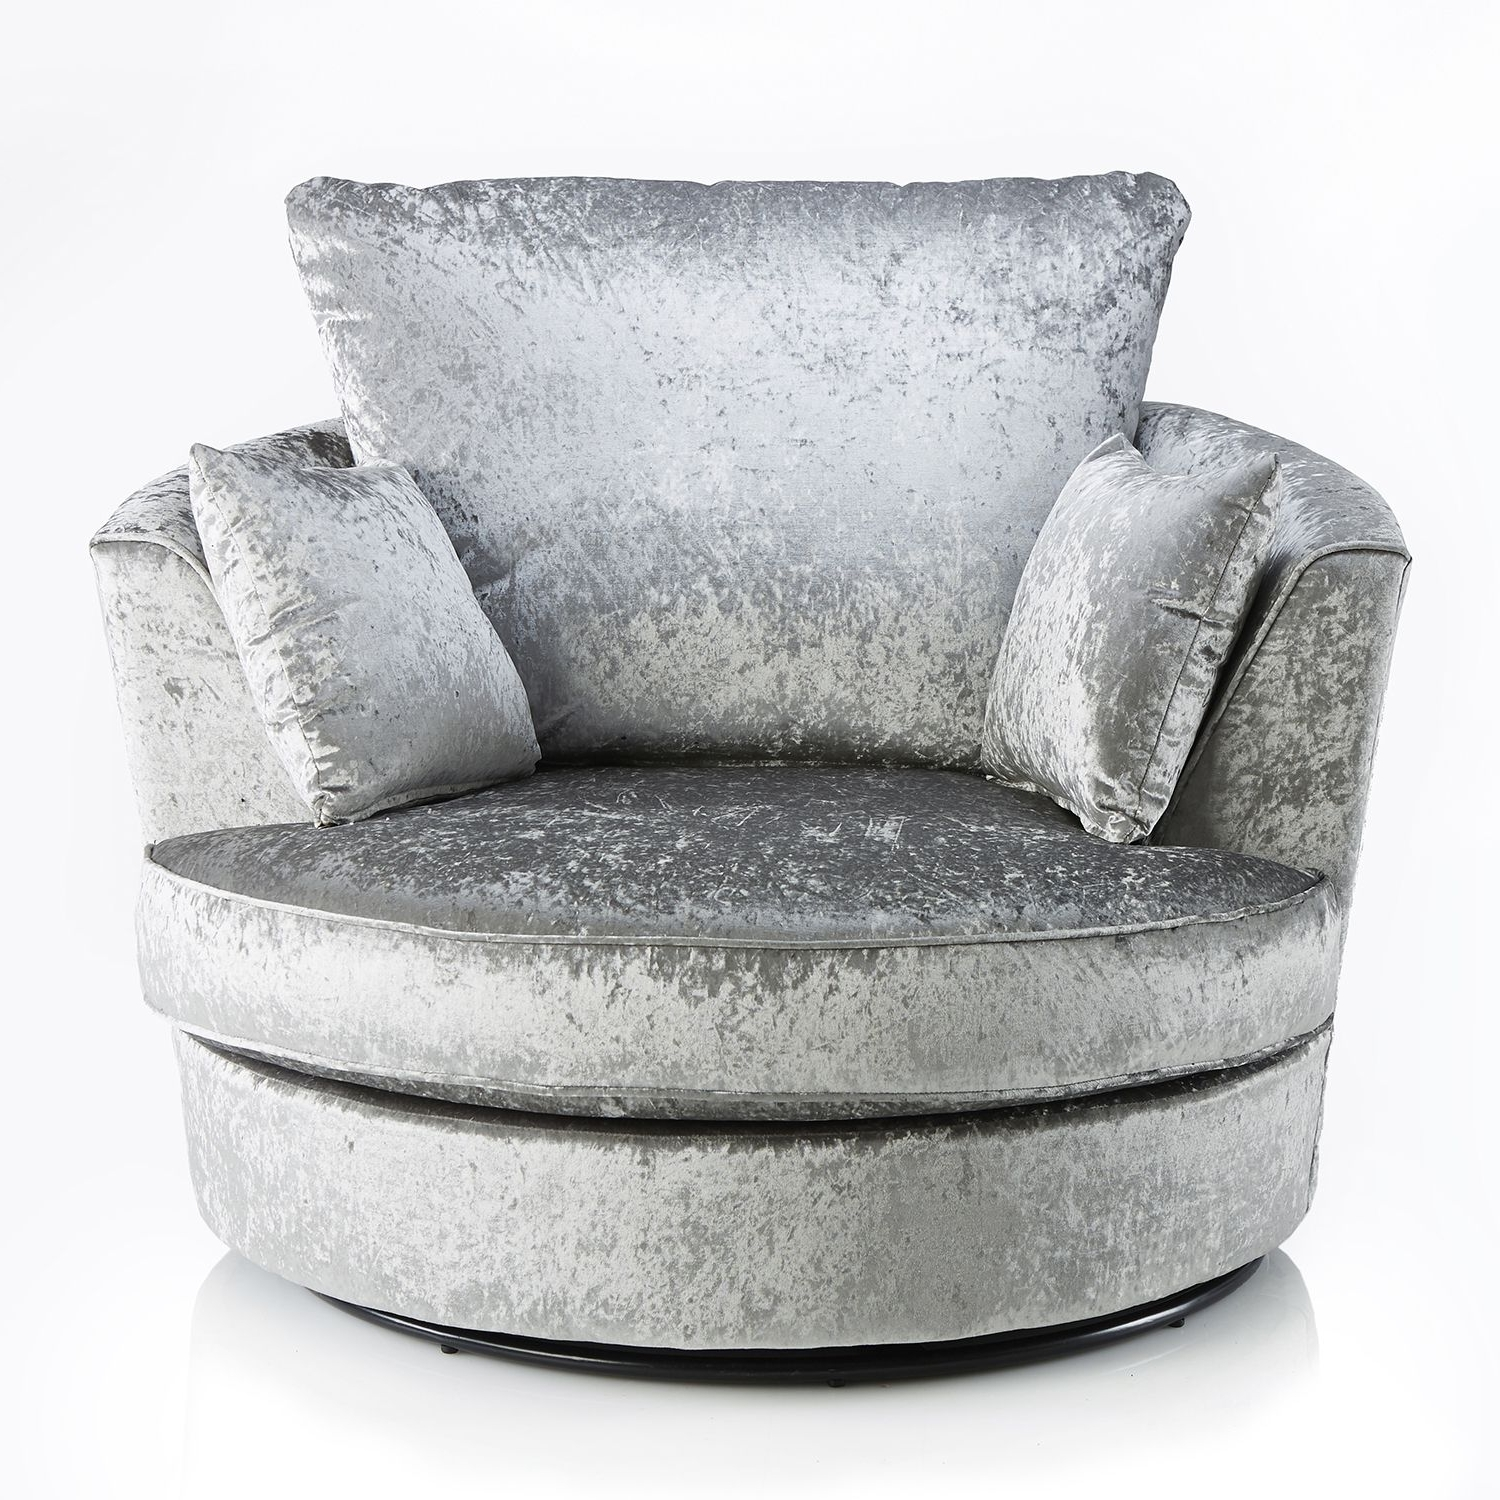 Sofas With Swivel Chair Within Most Recent Michigan Velvet Swivel Chair Silver (View 3 of 15)